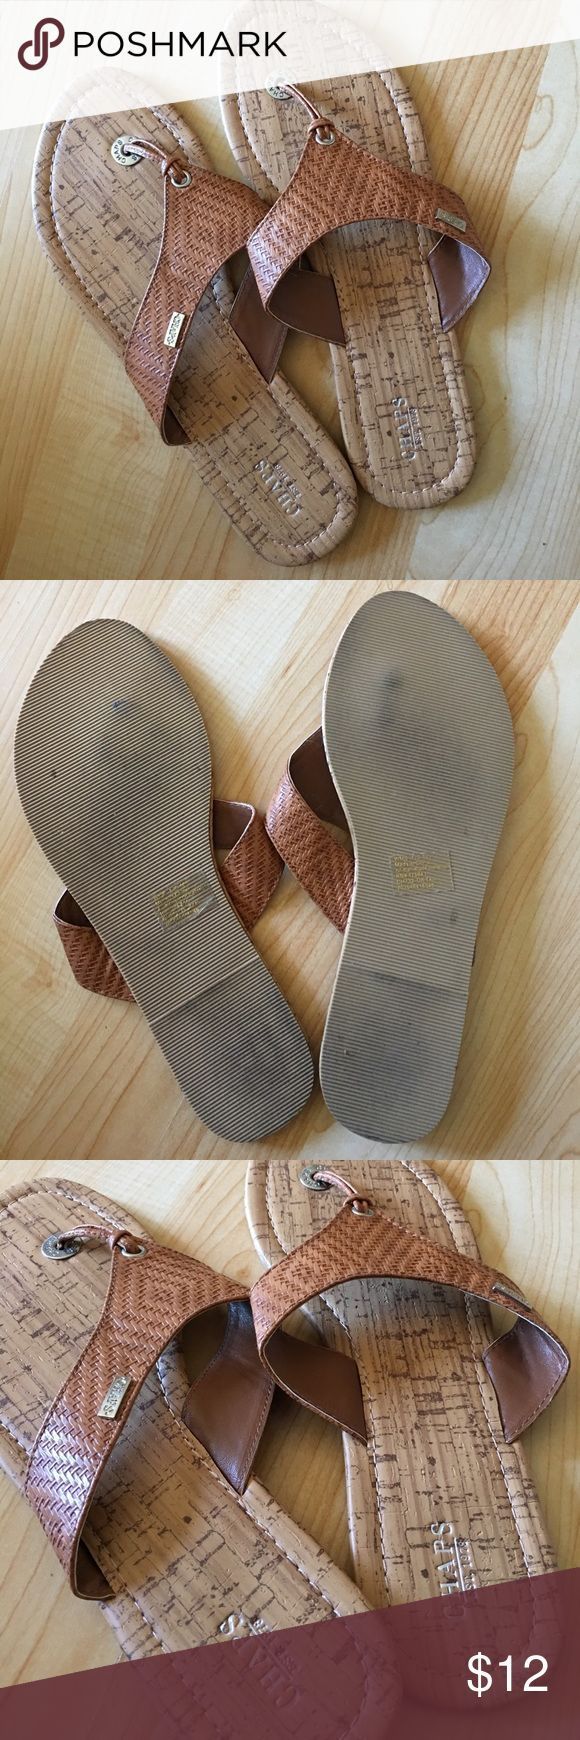 Chaps Ralph Lauren Thong Brown Sandals Aztec Like new condition upper, slight wear as shown to bottom. Buy with confidence I'm a top 10% Poshmark seller! Chaps Shoes Sandals